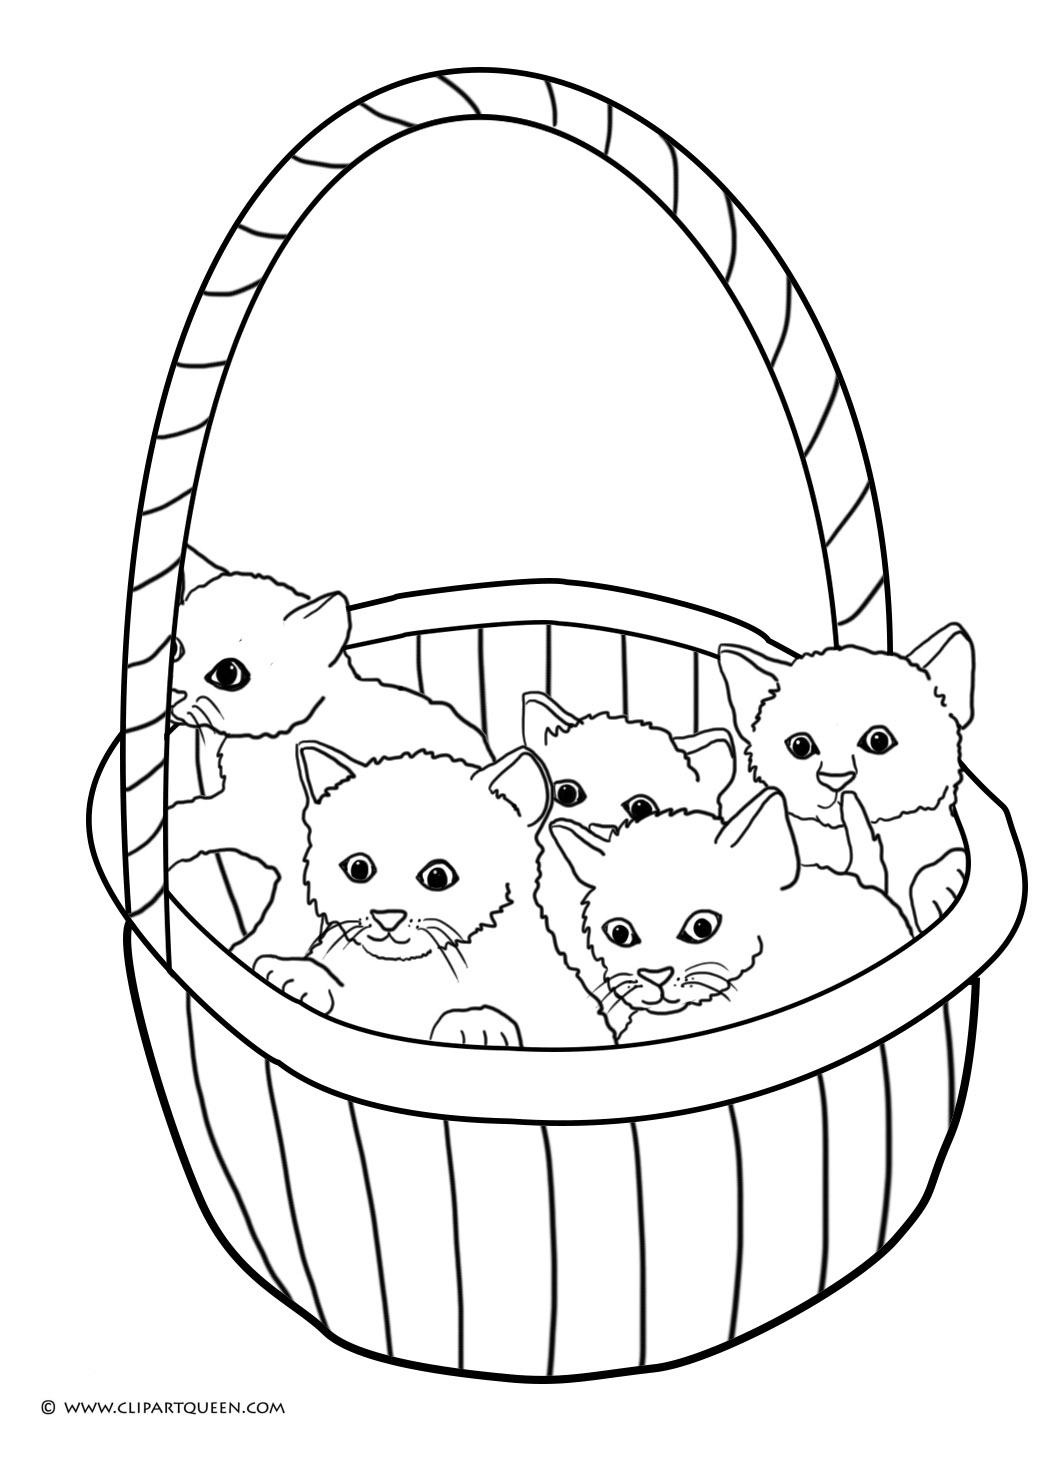 pictures of cats and kittens to color color in these cuddly cats worksheets printables pictures kittens cats and to color of